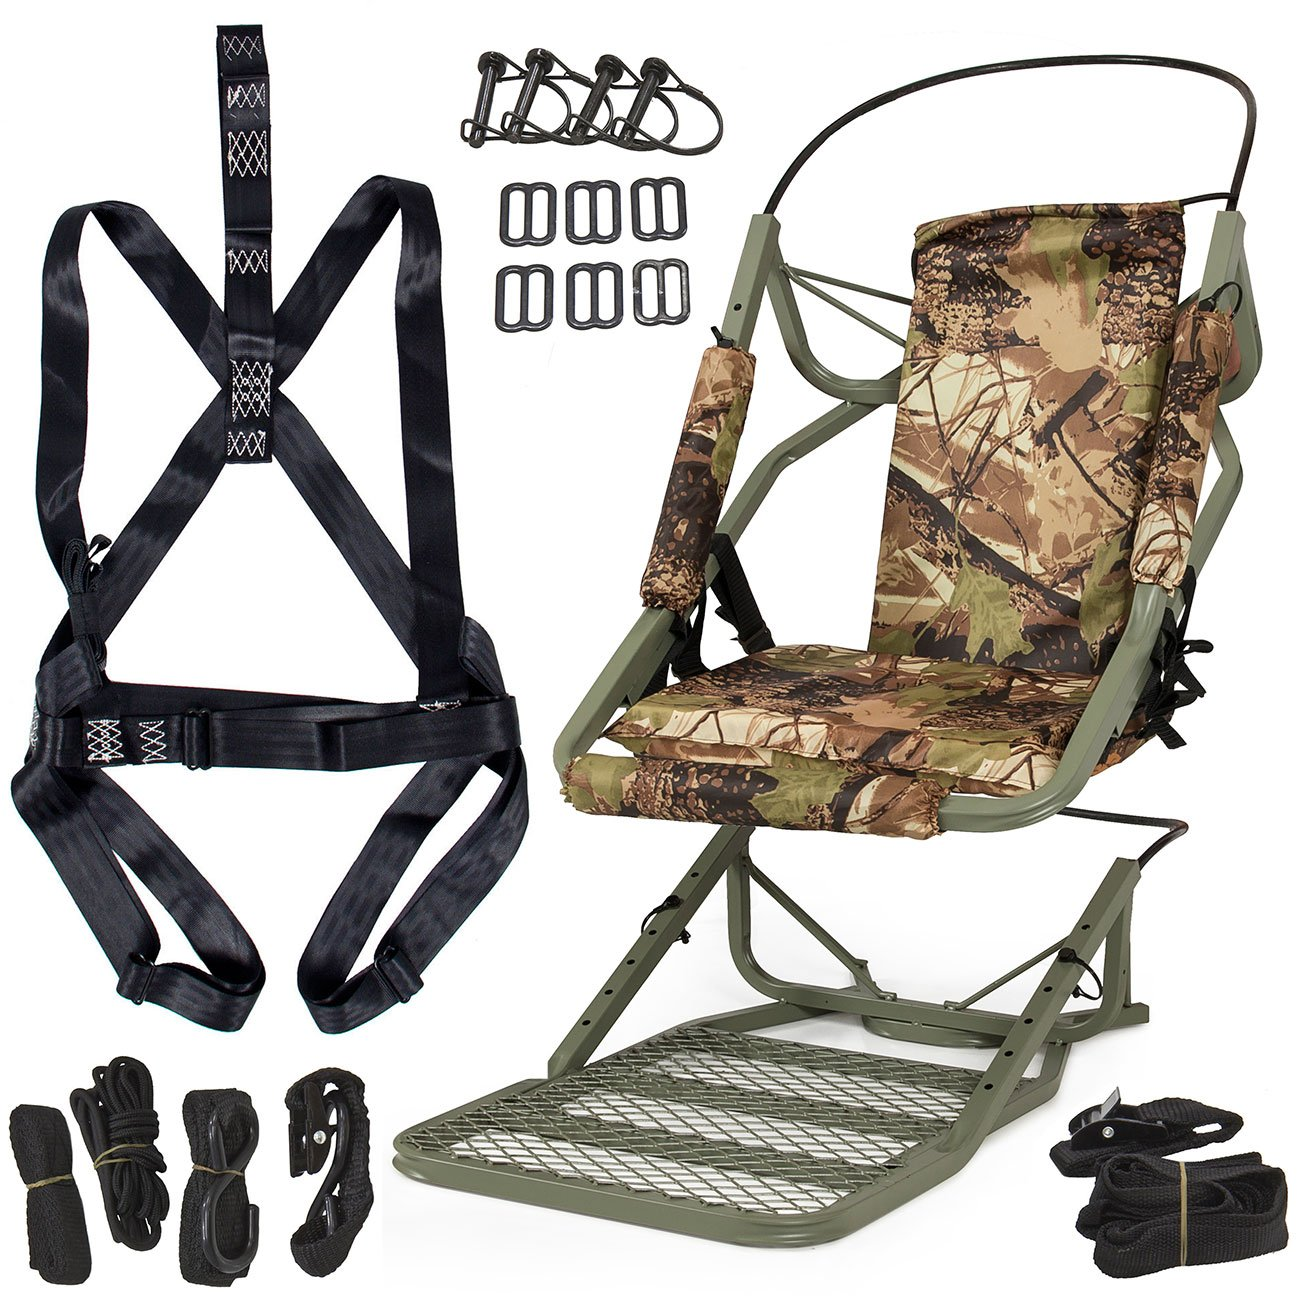 ARKSEN Portable Tree Stand Climber Climbing Hunting Deer Rifle Bow Game Hunt Outdoor w/Body Strap Kit